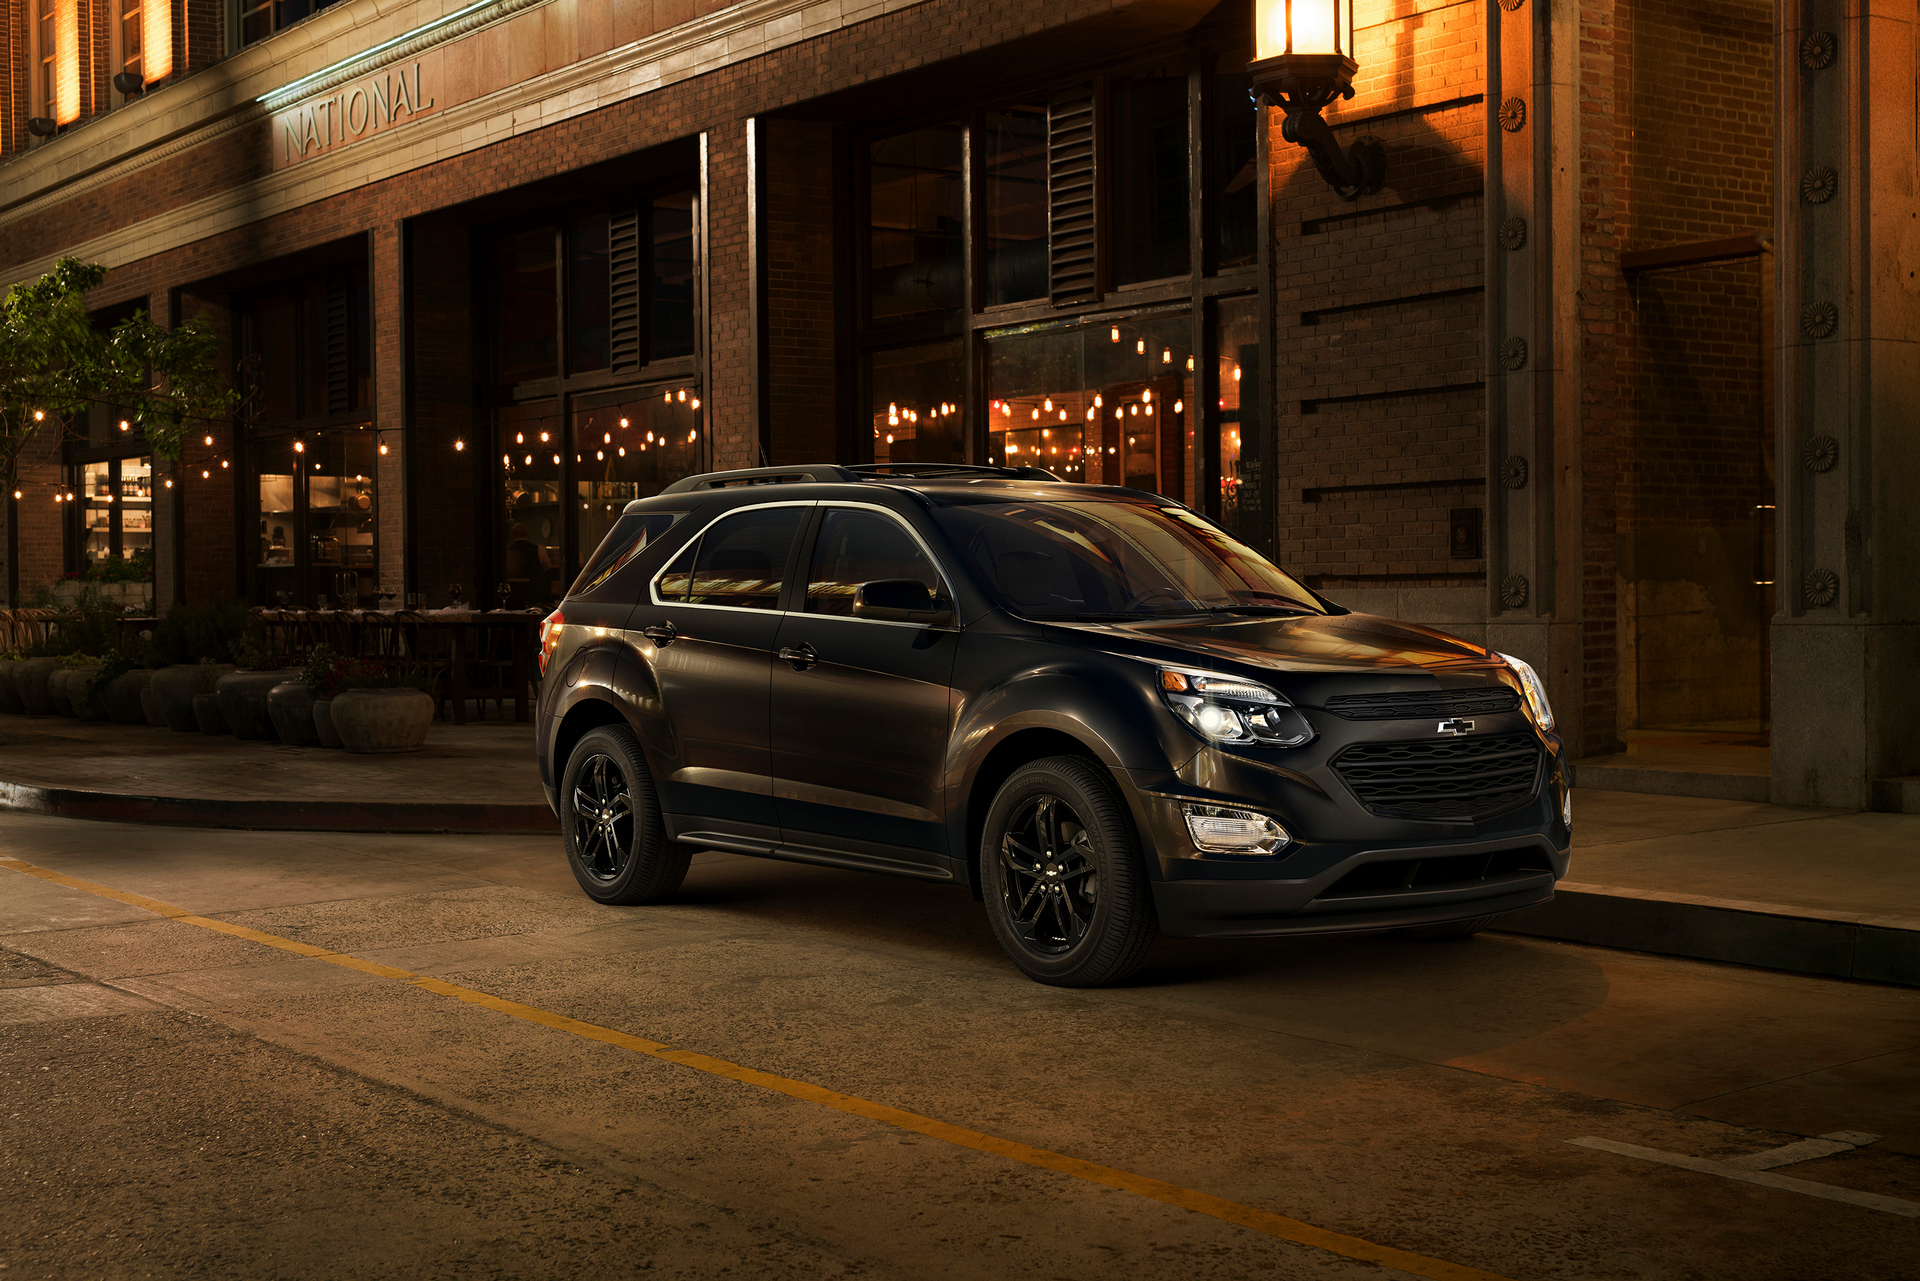 The Equinox Midnight (shown) and Sport Editions and Traverse Graphite Edition join the Trax Midnight Edition and a growing portfolio of Chevrolet special-edition vehicles. Equinox and Traverse combined sales are up double digits in the month of July as crossovers continue to be hot segments © General Motors